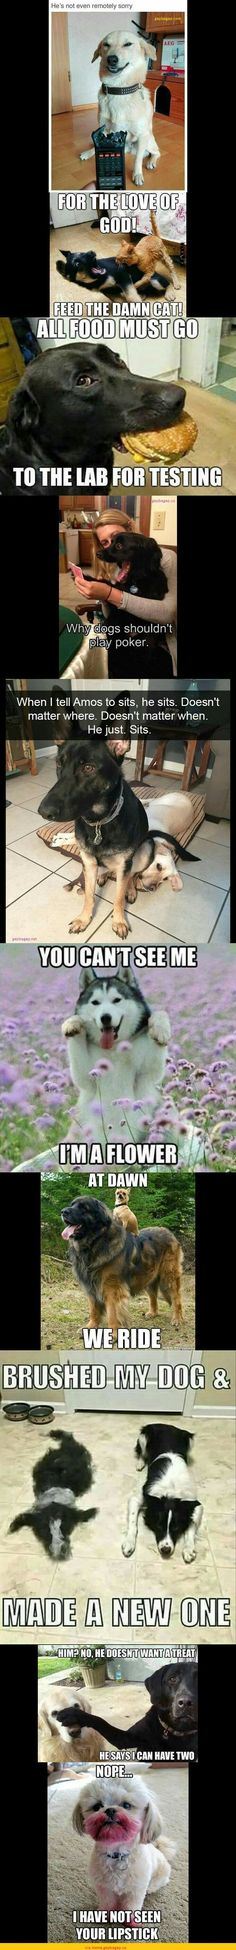 Top 10 Funny Pictures Of The Day ft. Funny Dogs